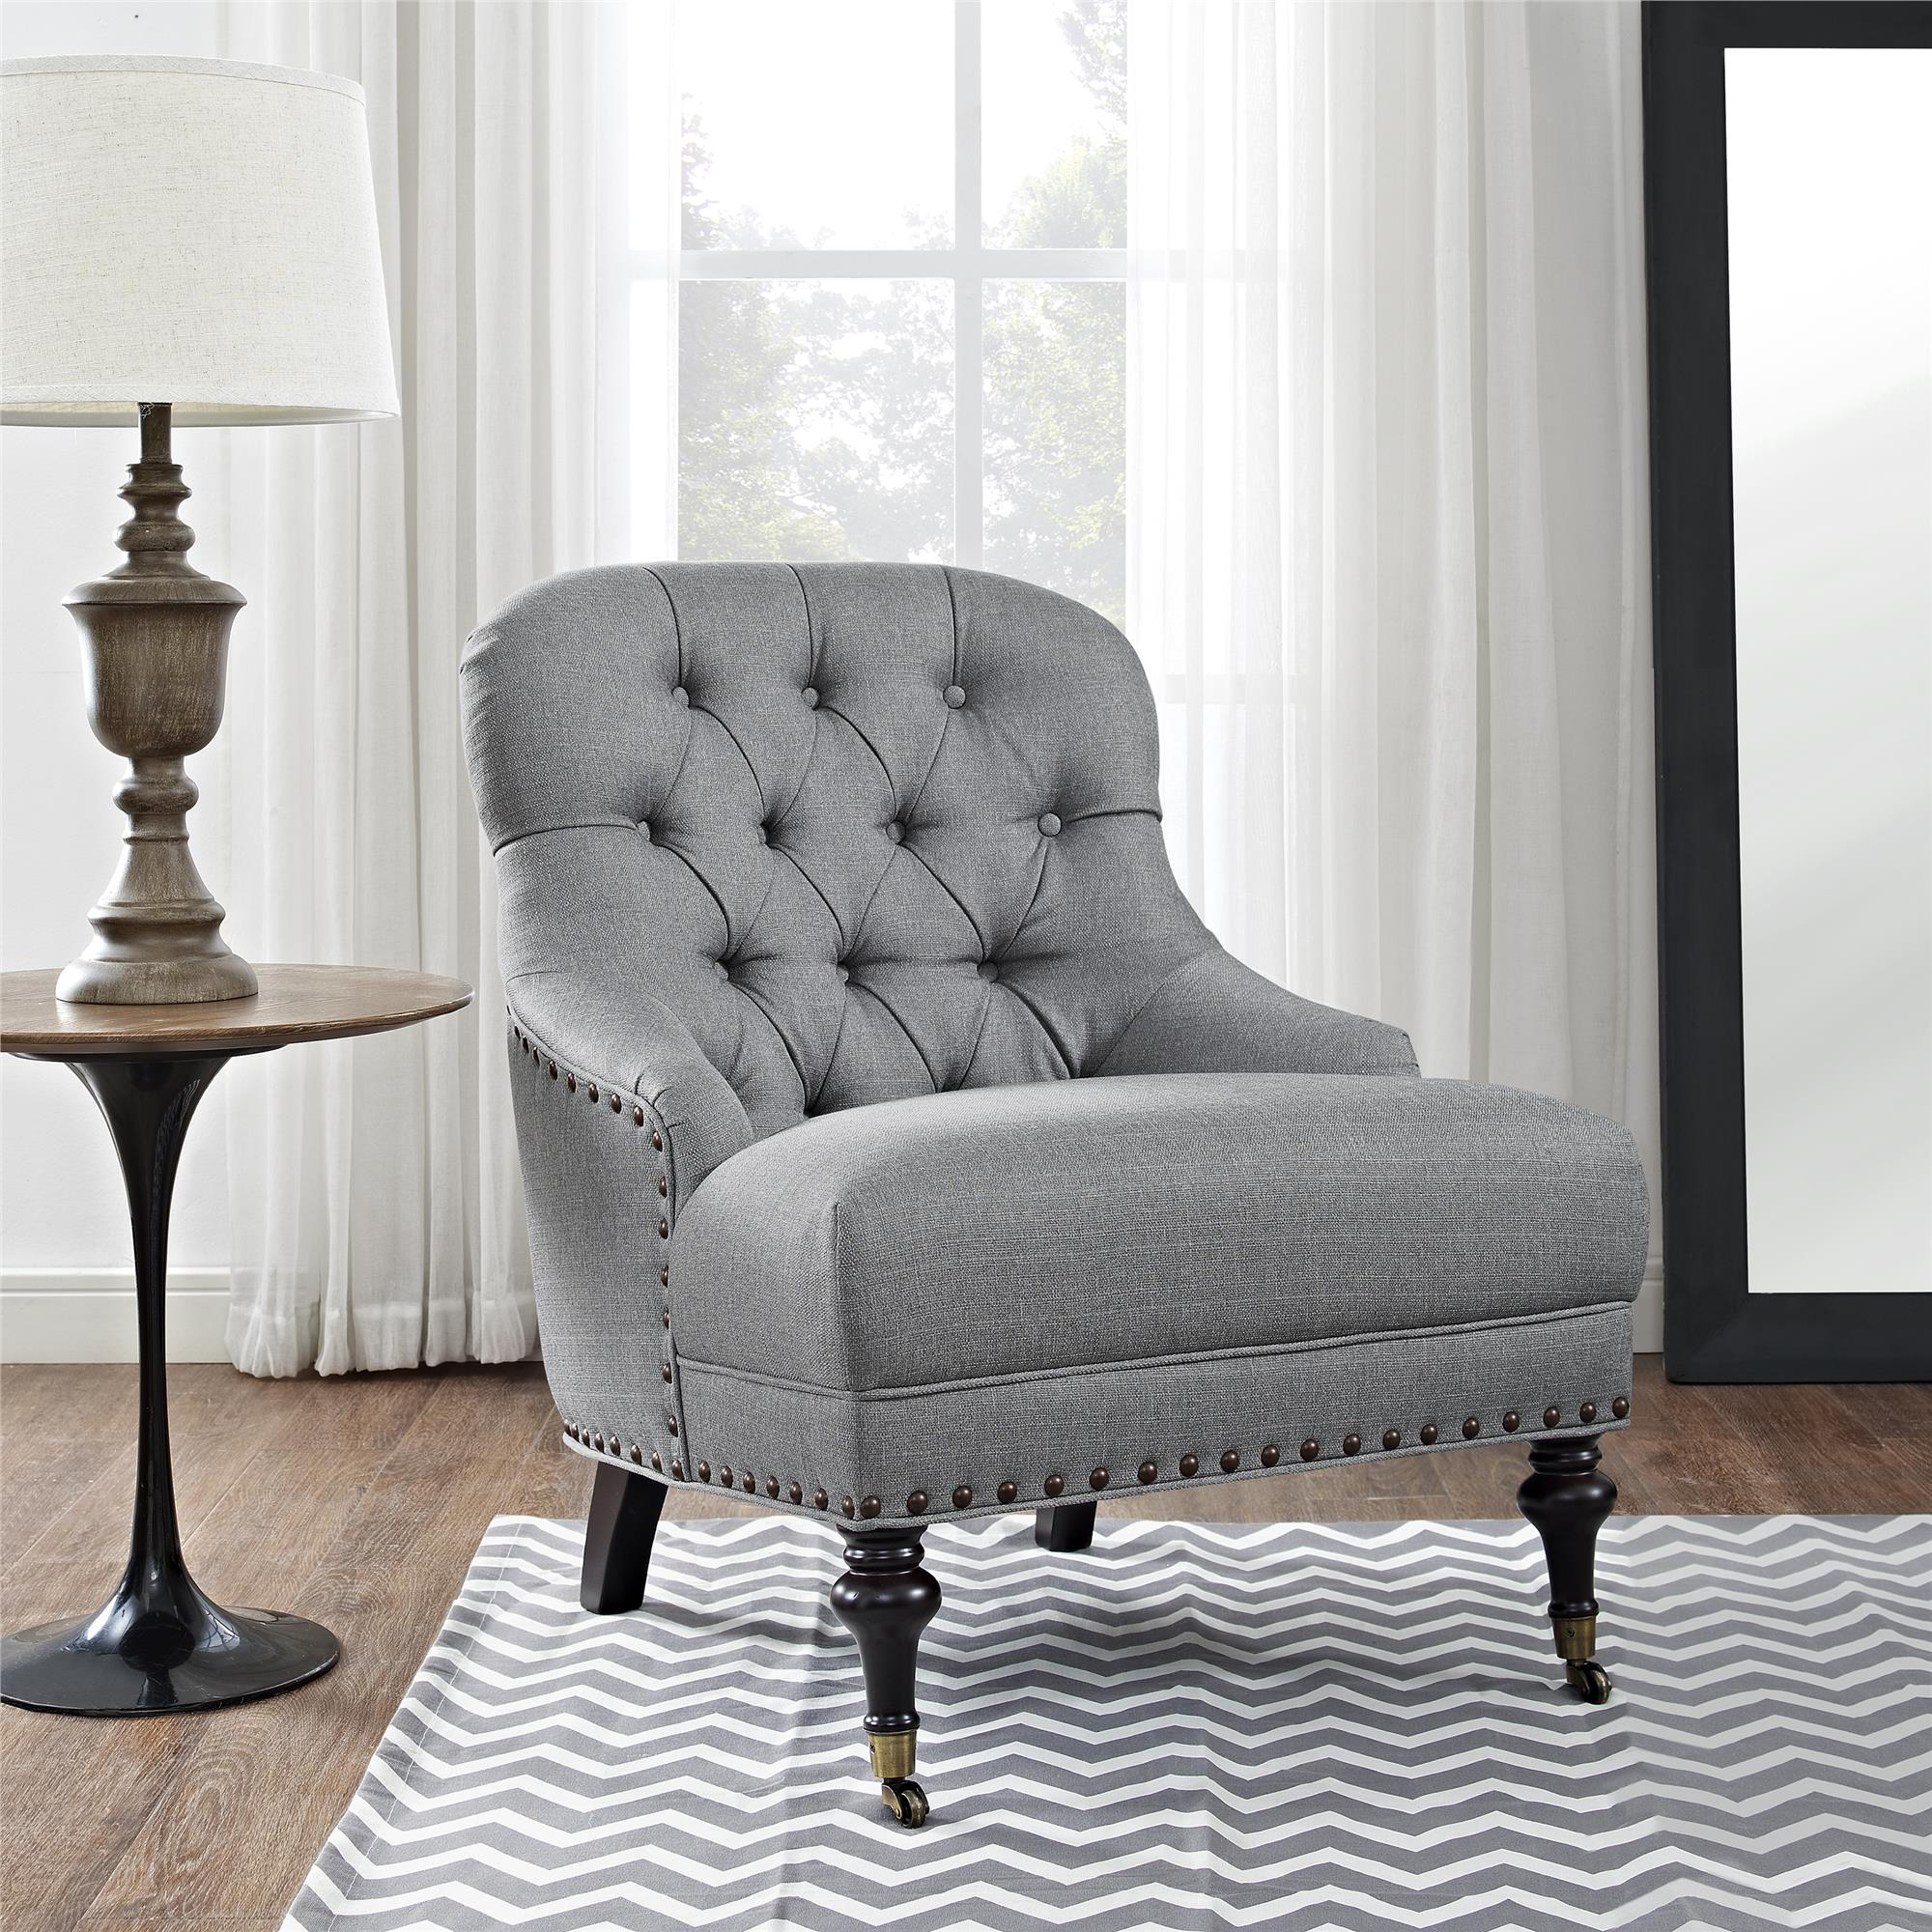 Awesome Tufted Accent Chair Set